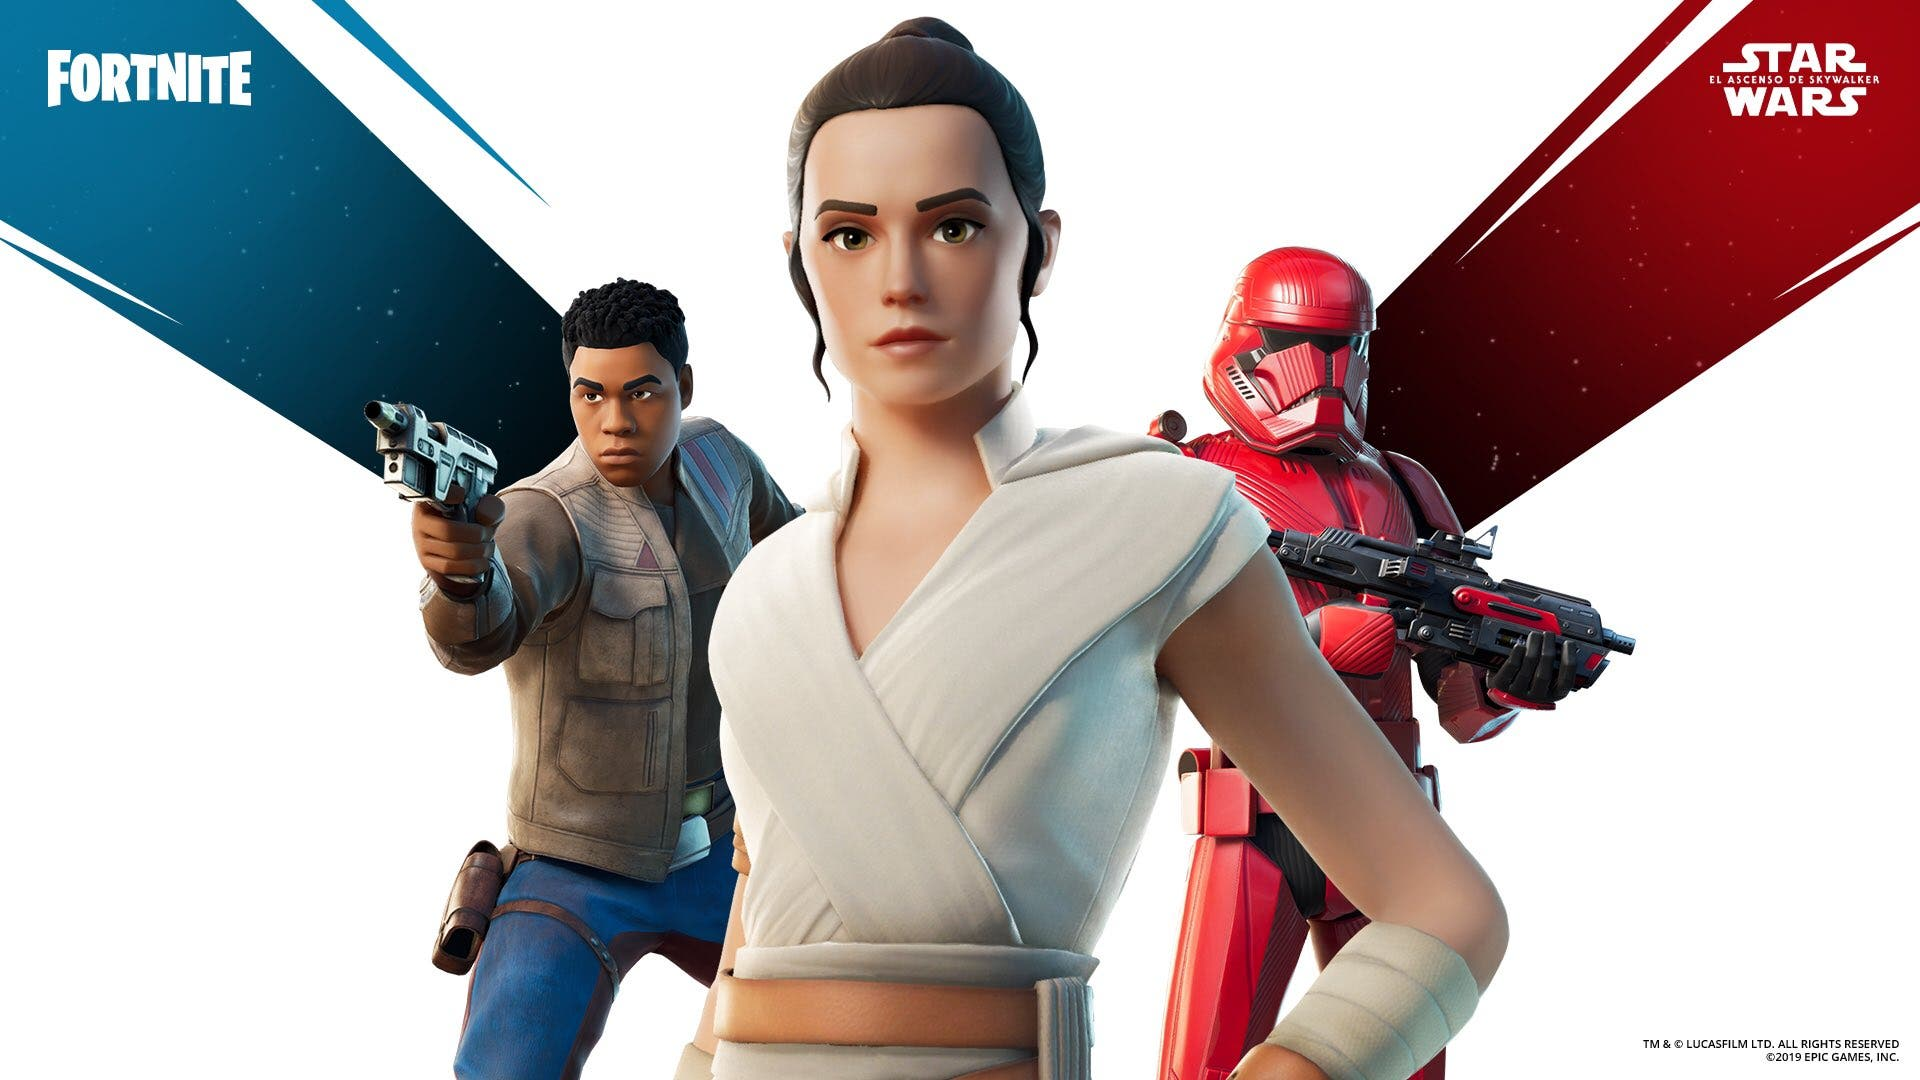 Fortnite recibe skins de Star Wars: El ascenso de Skywalker